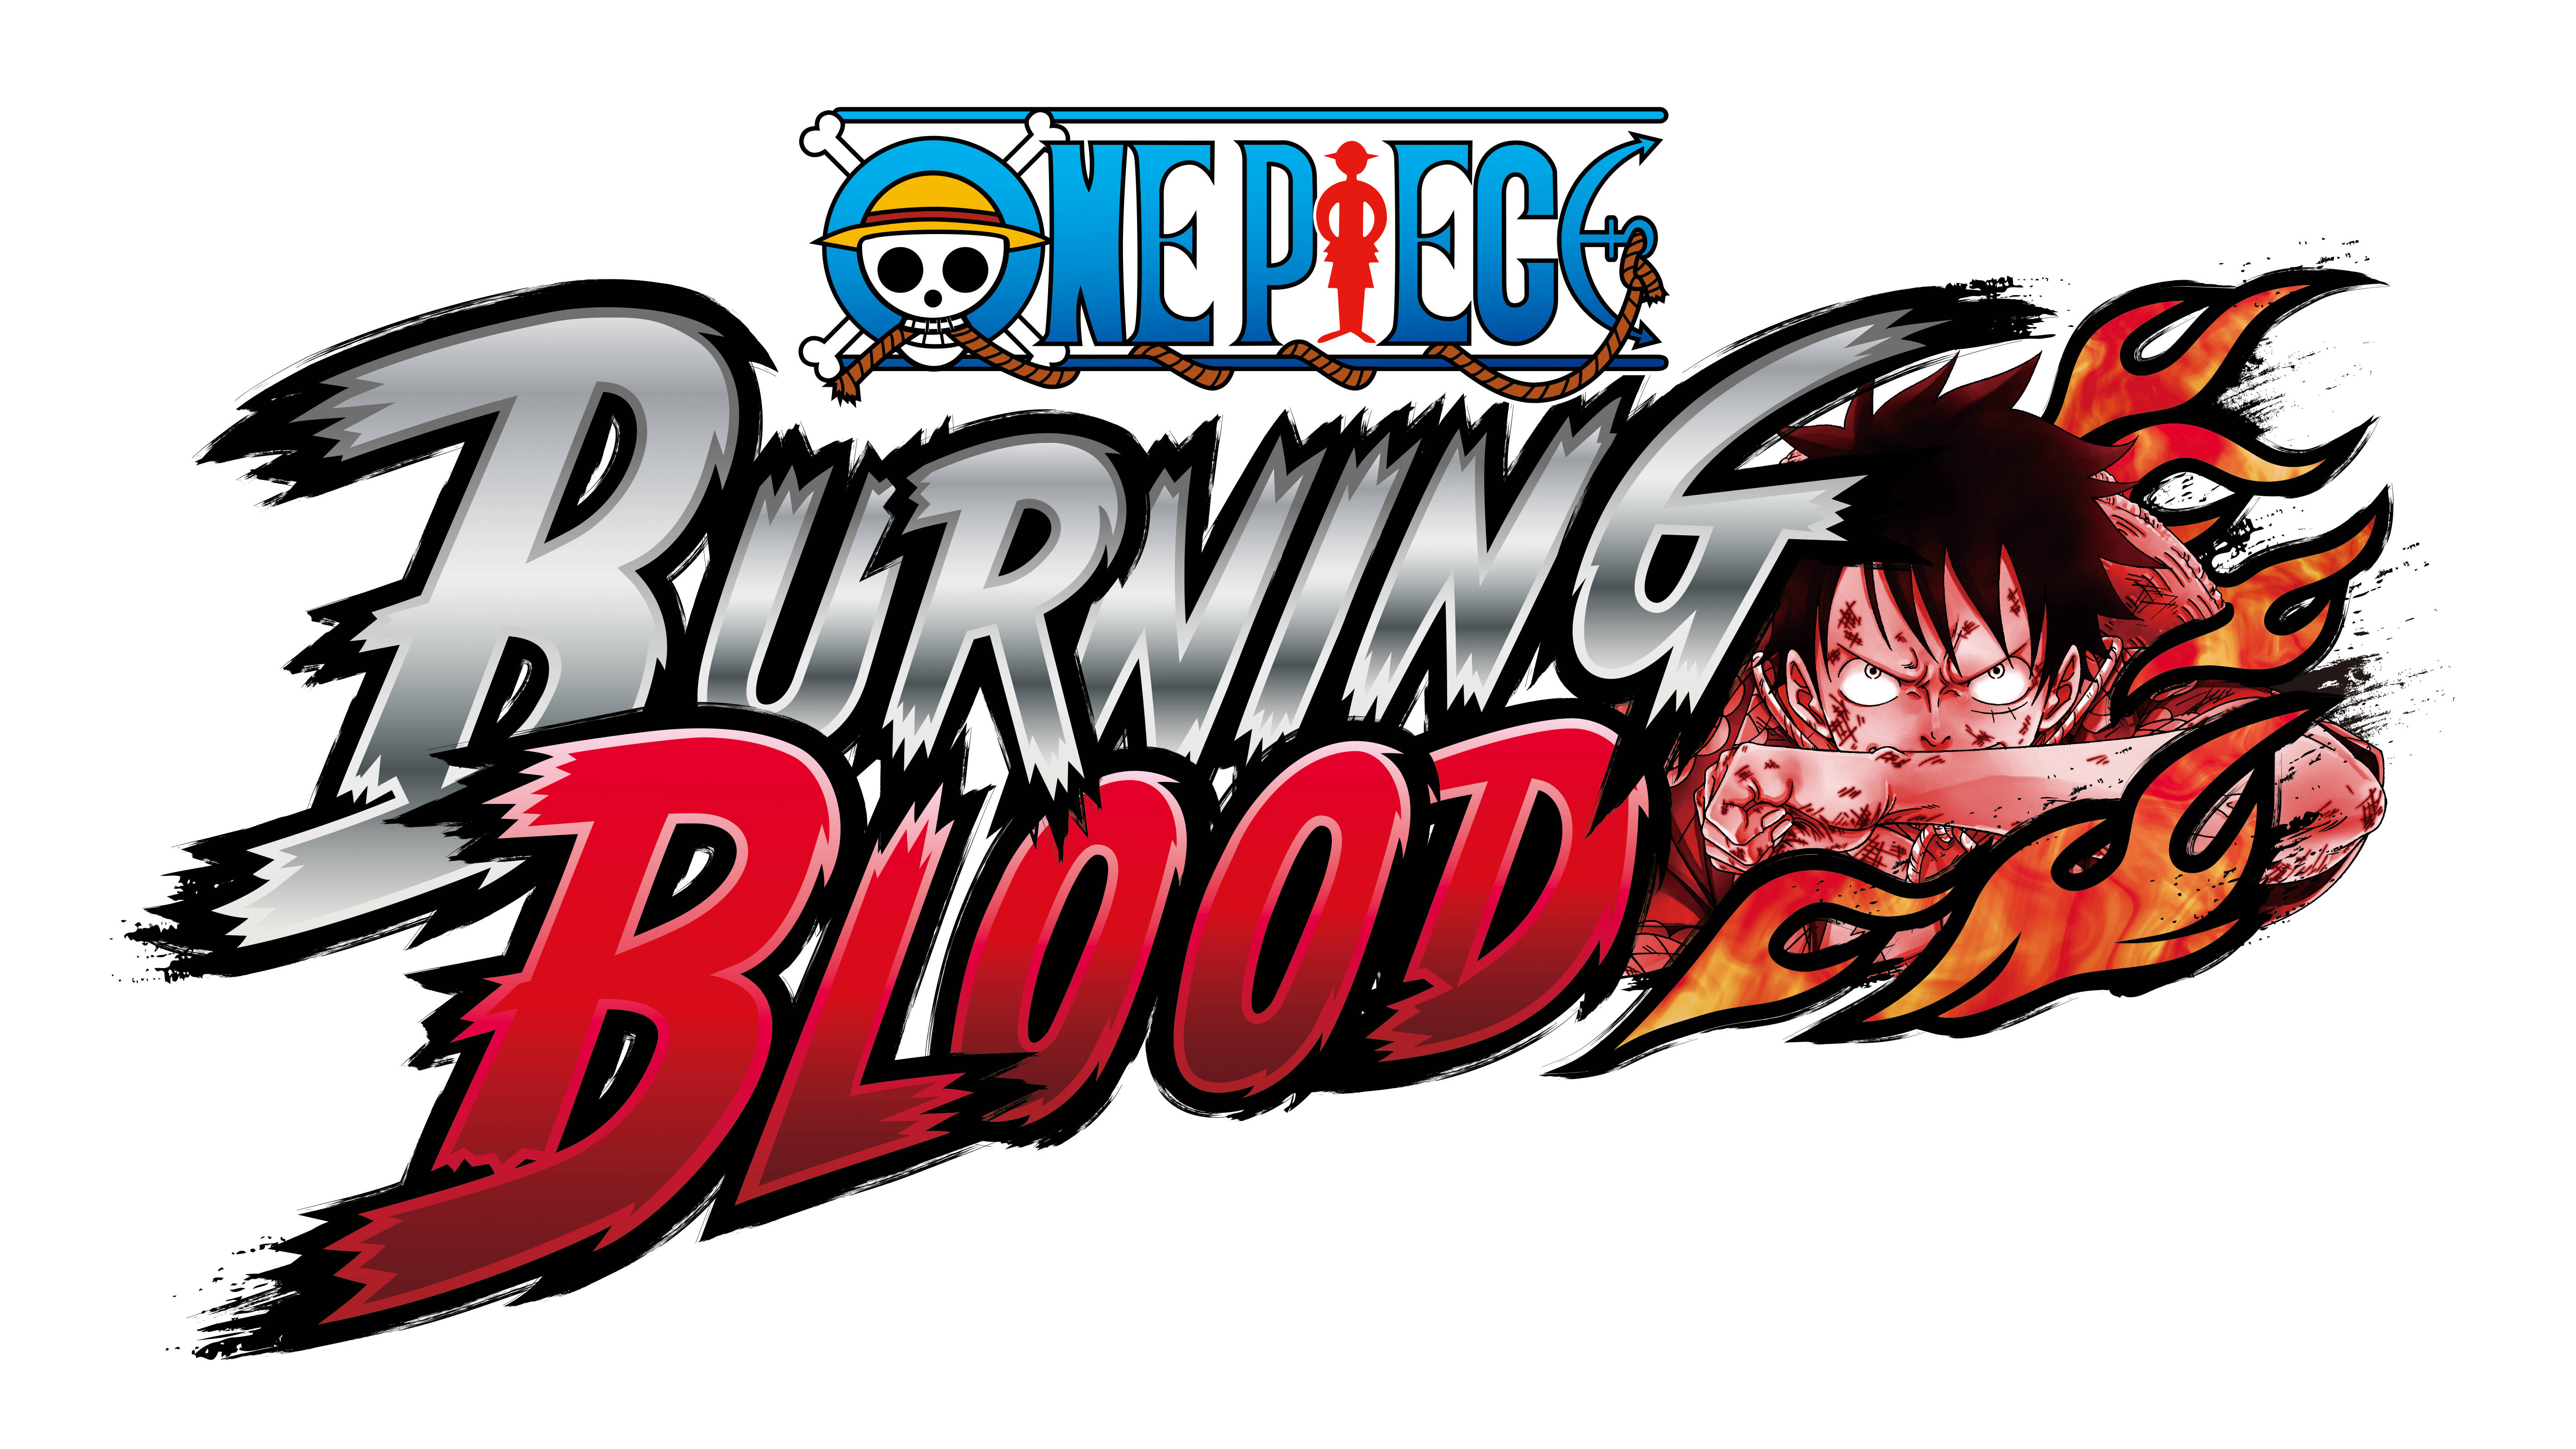 "One Piece Burning Blood""  Bandai Namco criticsight 2015 banner  logo"